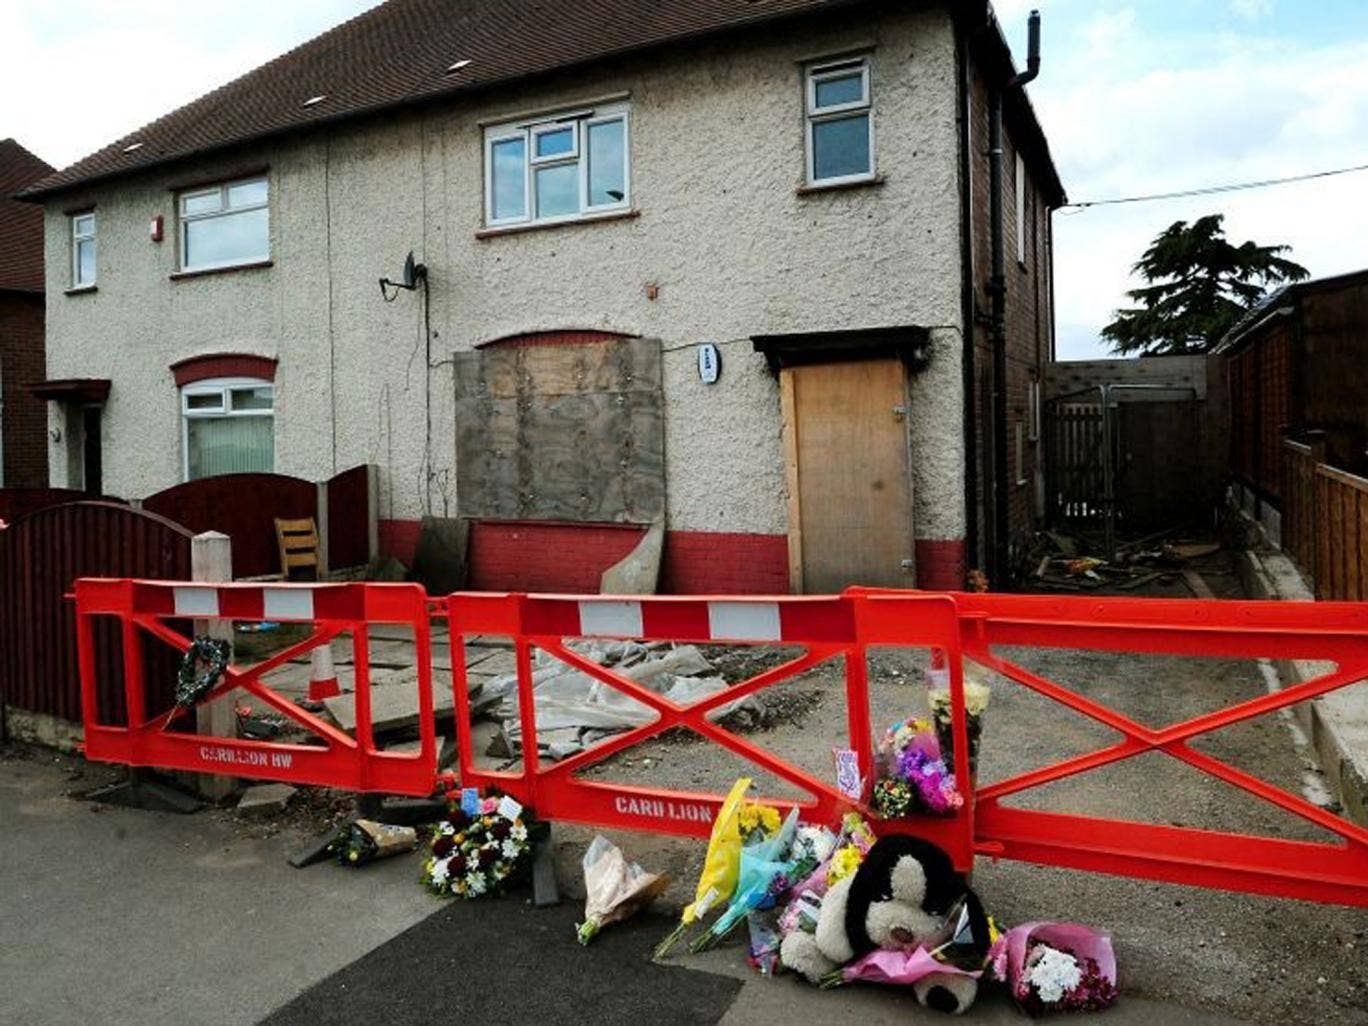 This house - in which Mick Philpott killed six of his 17 children - well be demolished